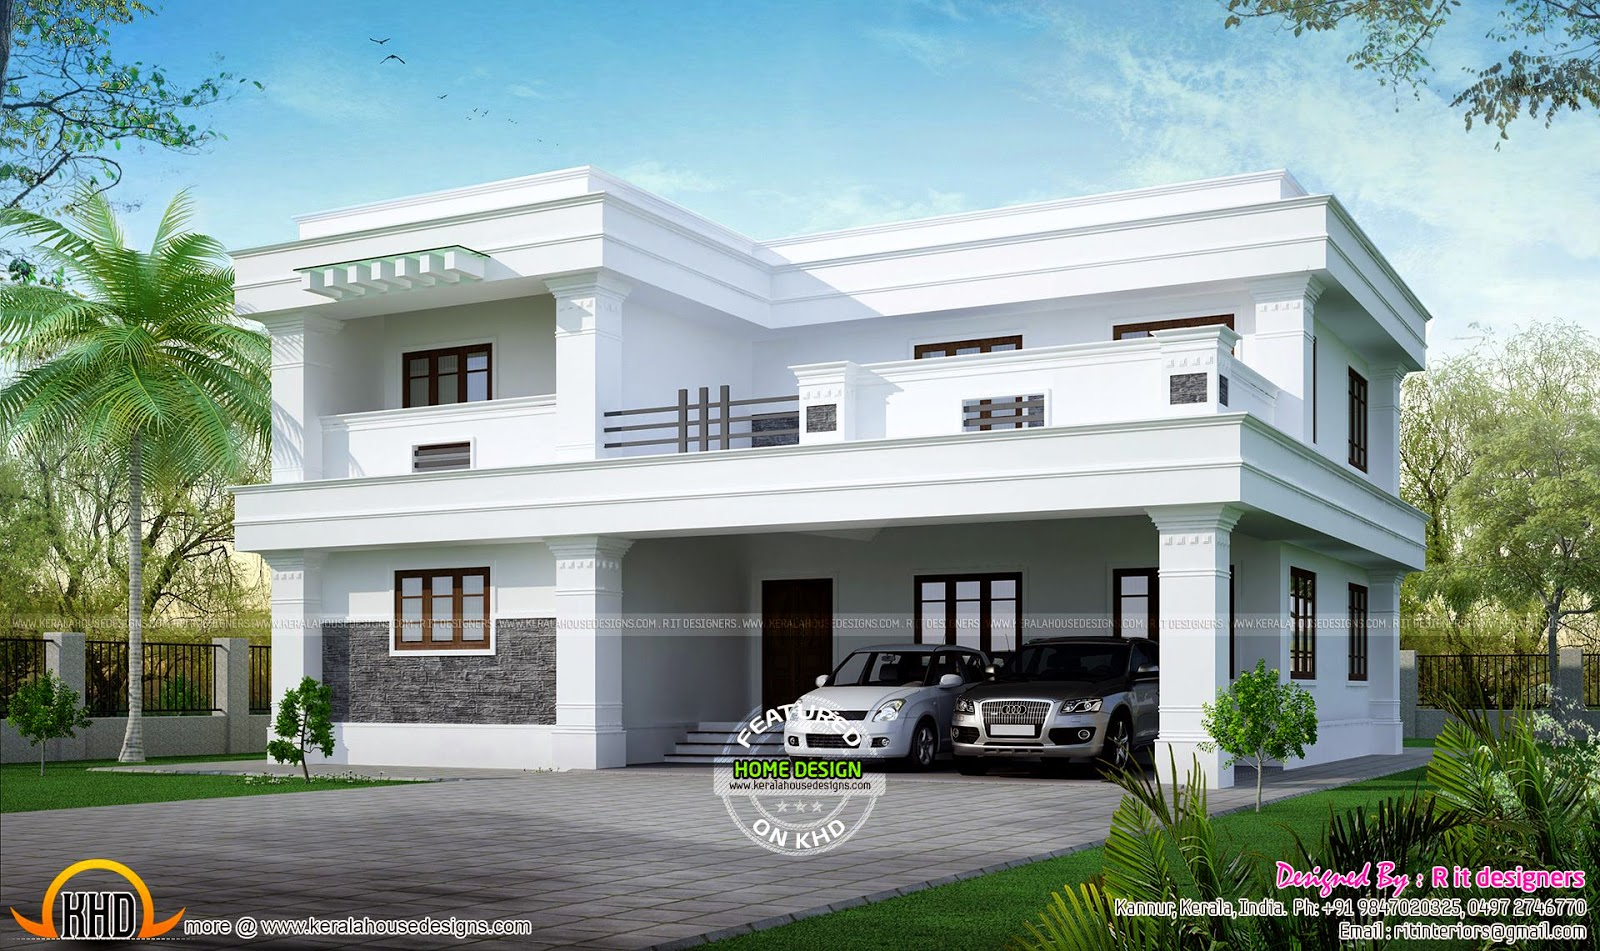 Residence at bangalore kerala home design and floor plans for Home designs bangalore